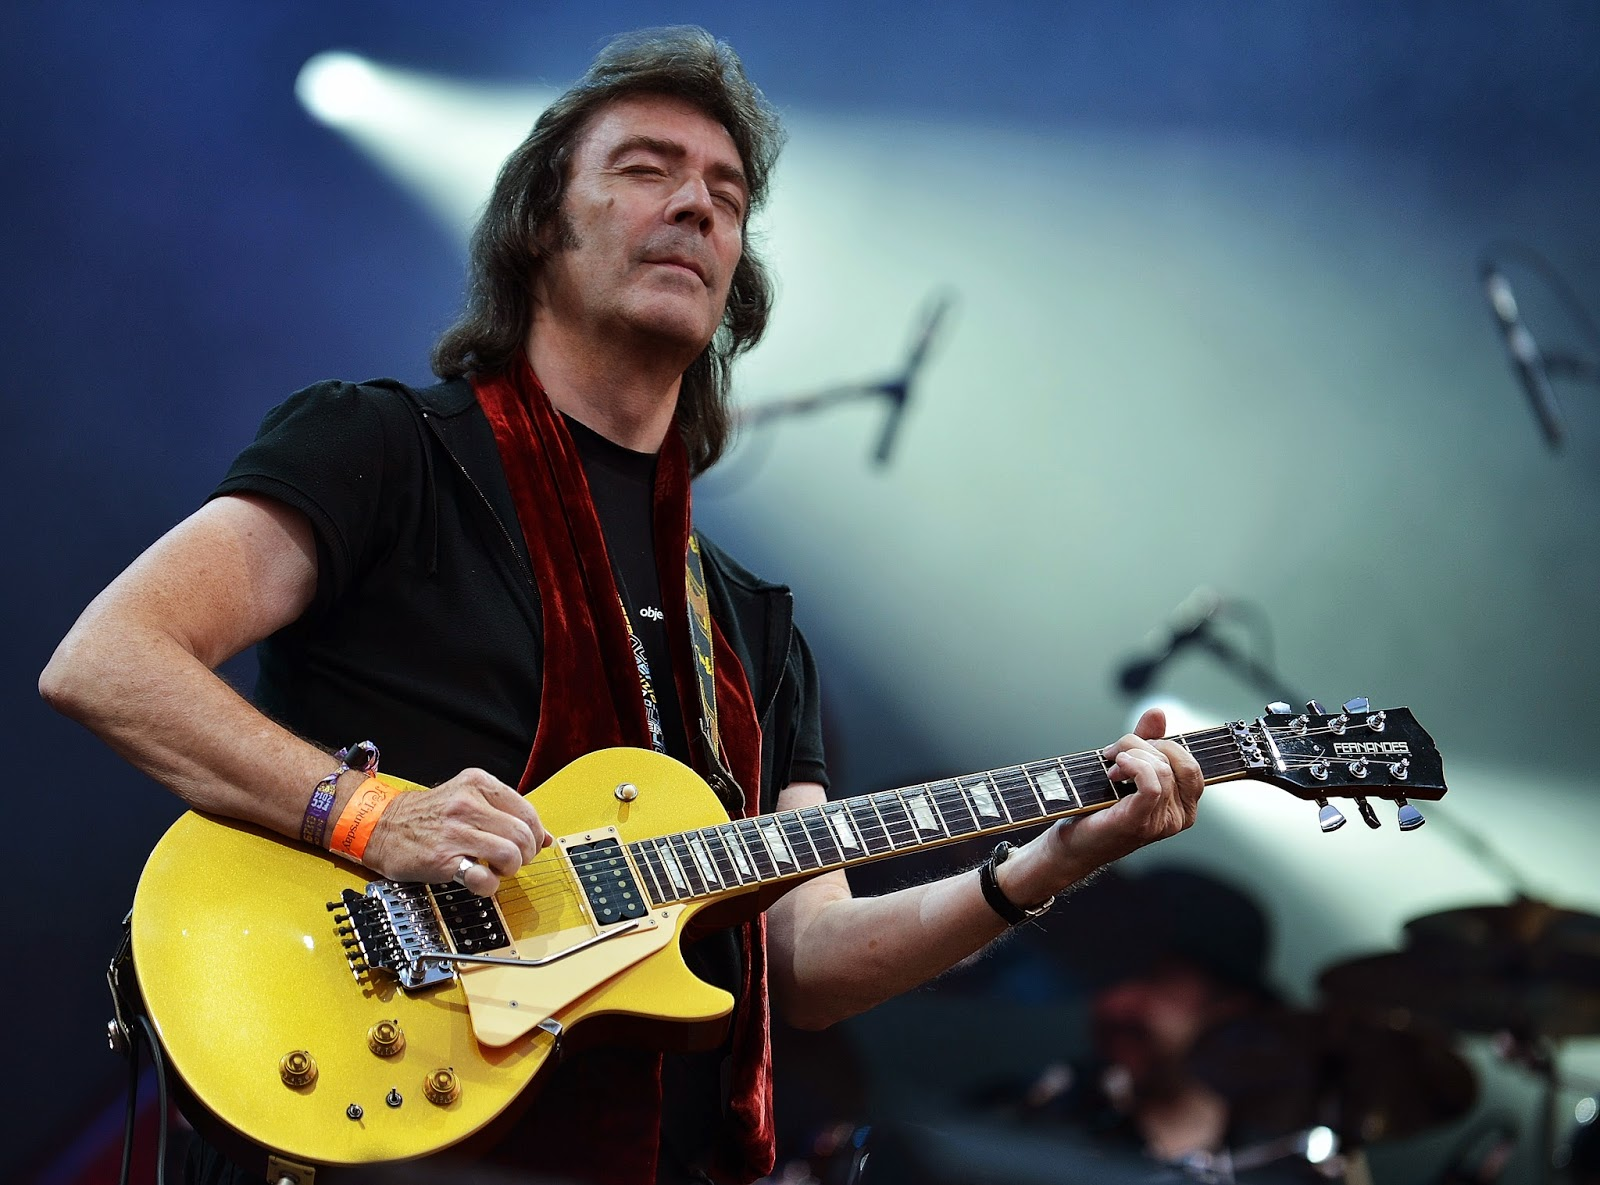 Island Zone Update: Steve Hackett: This Is What Genius Sounds Like